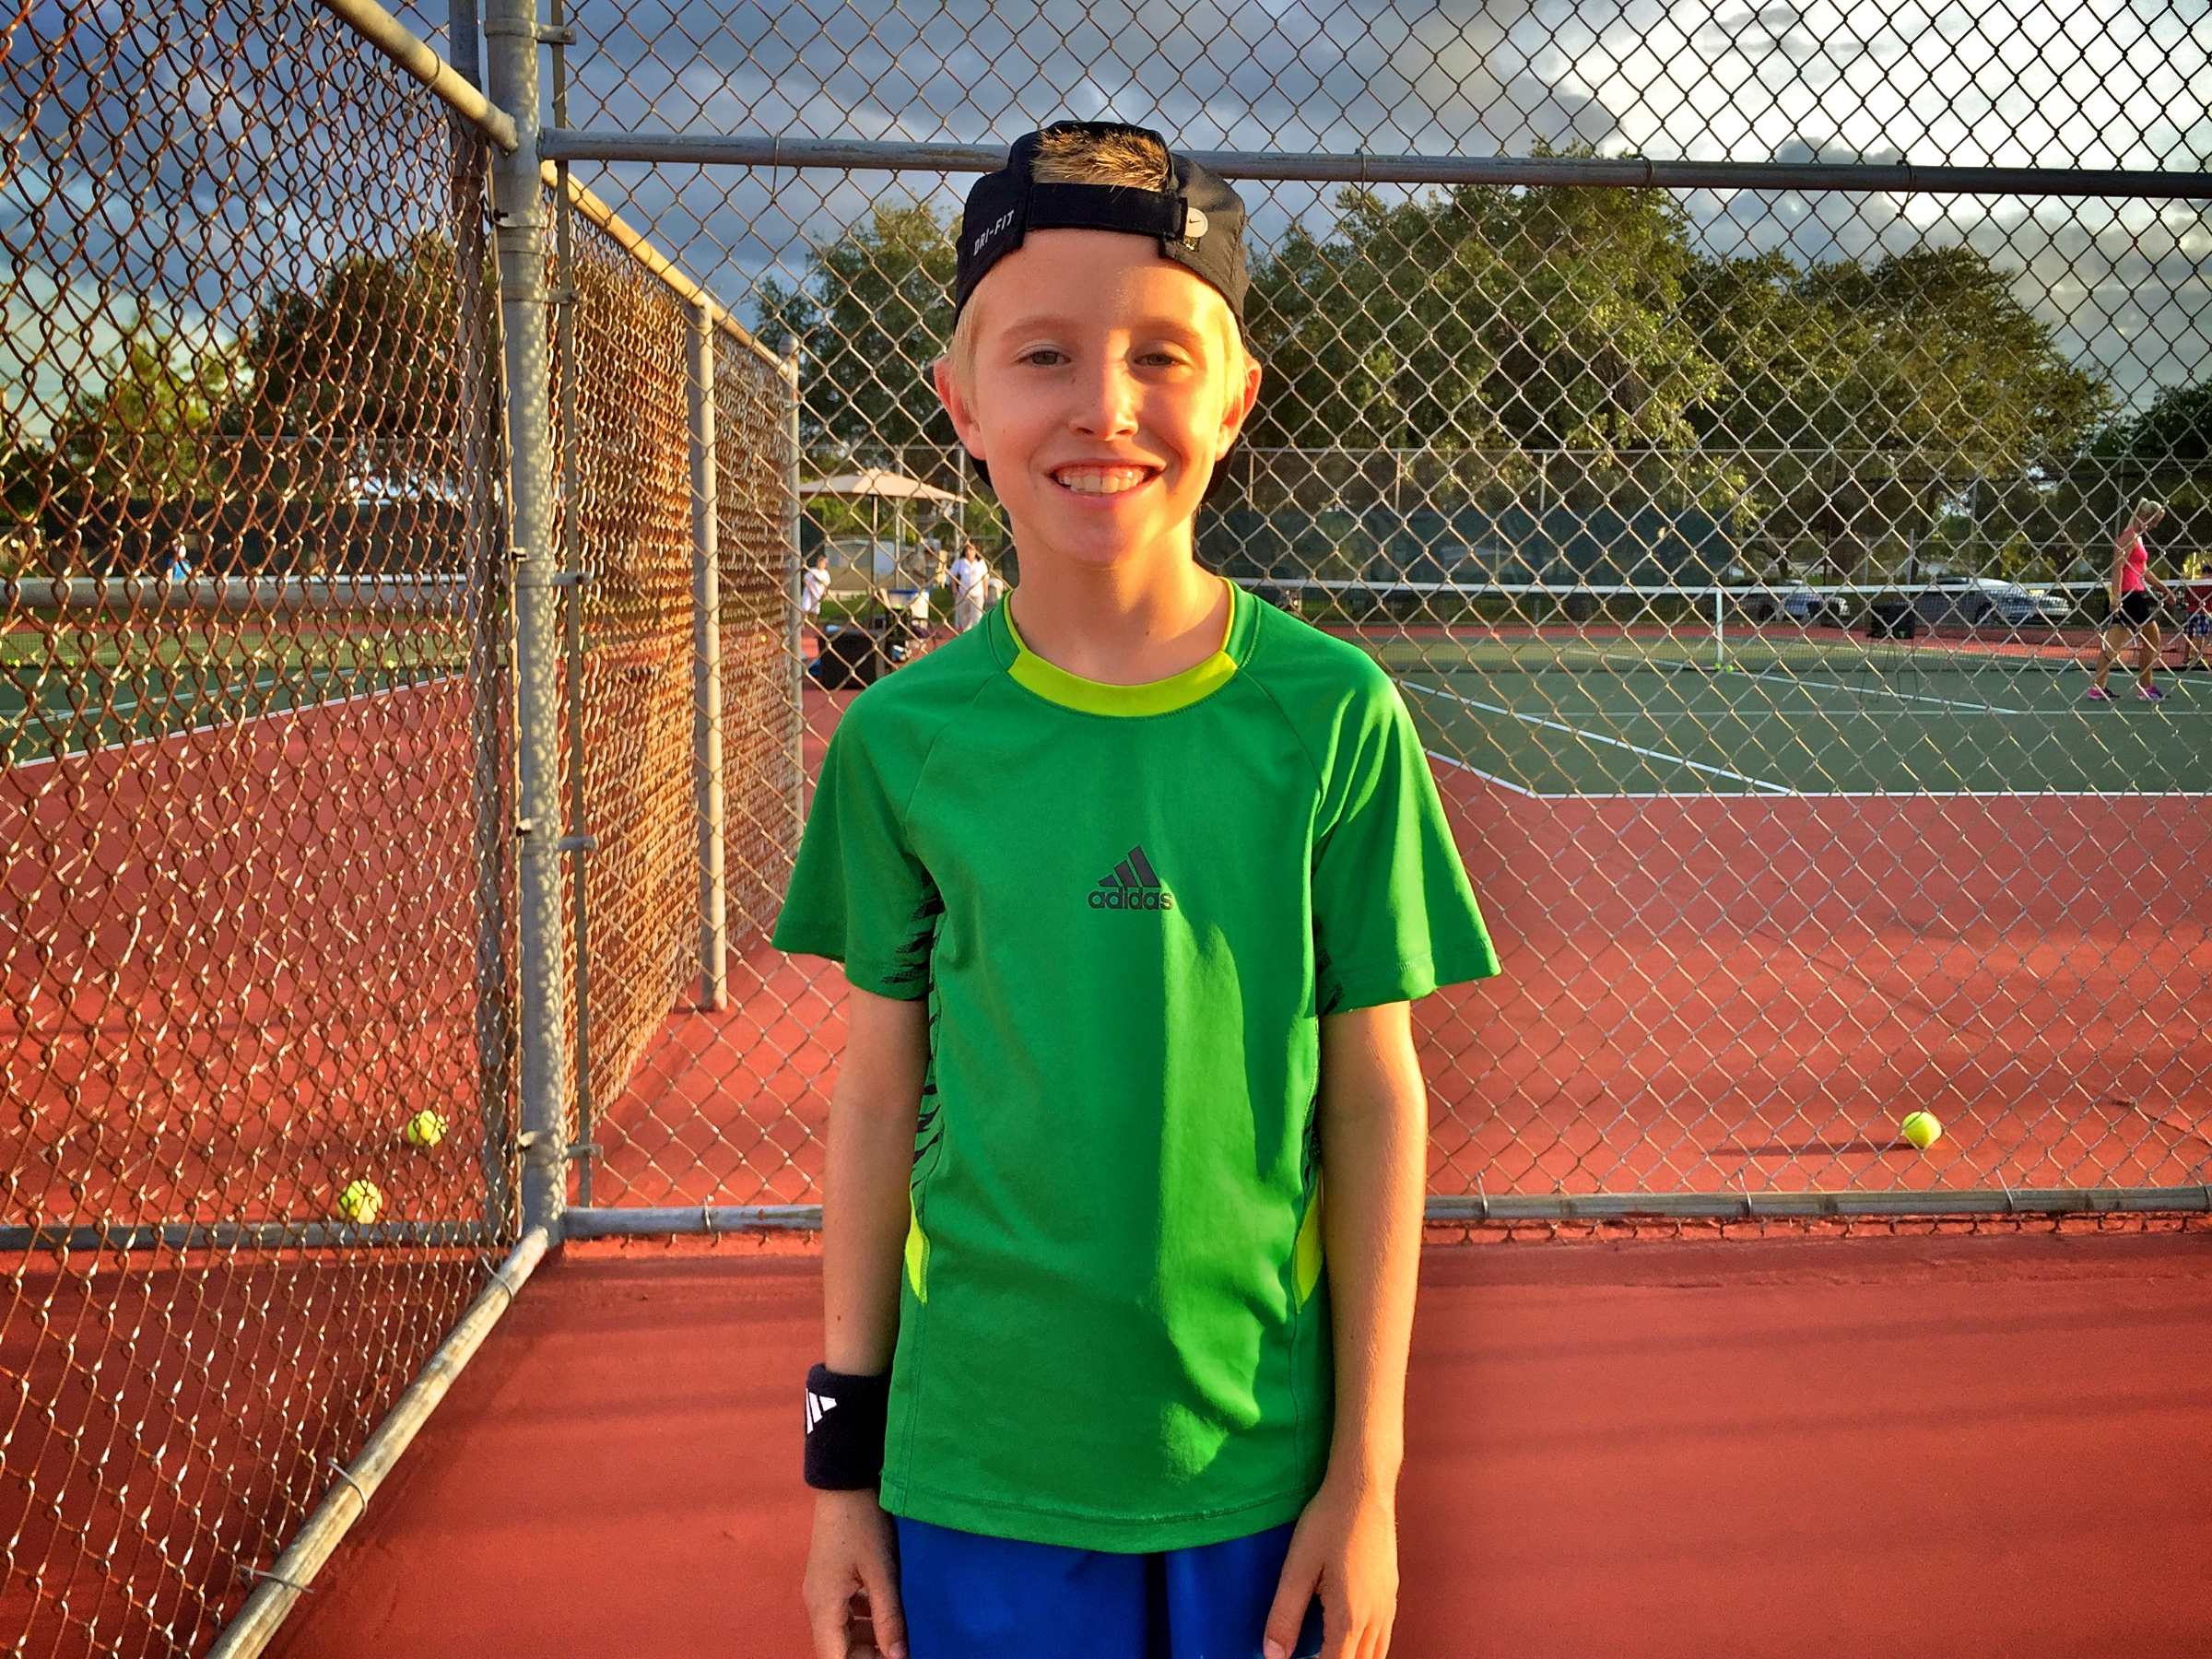 B10 player USTA Florida